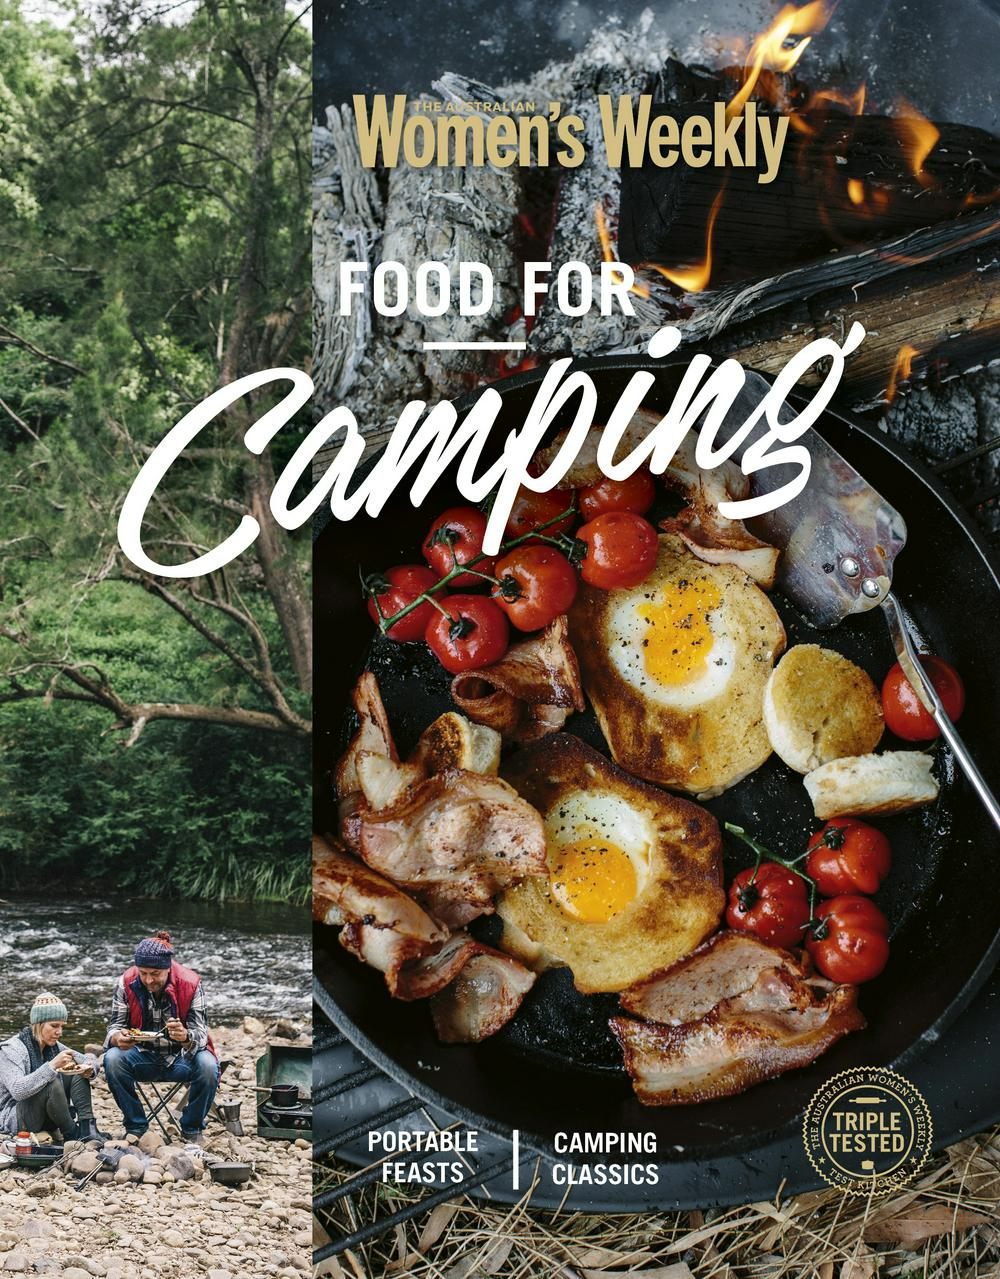 Food for Camping by The Australian Women's Weekly, ISBN: 9781925694680